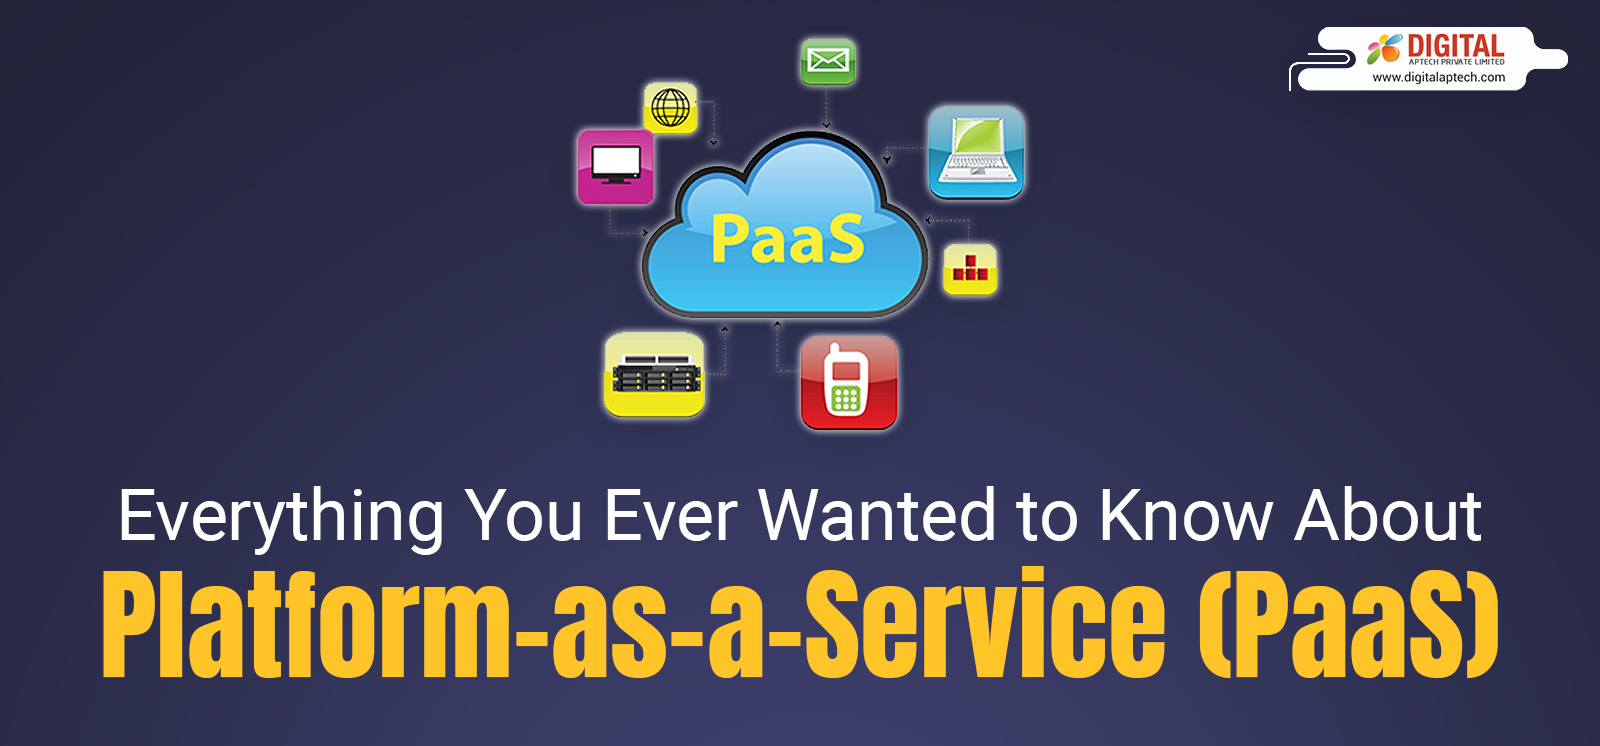 Everything You Ever Wanted to Know About PaaS (Platform-as-a-Service )